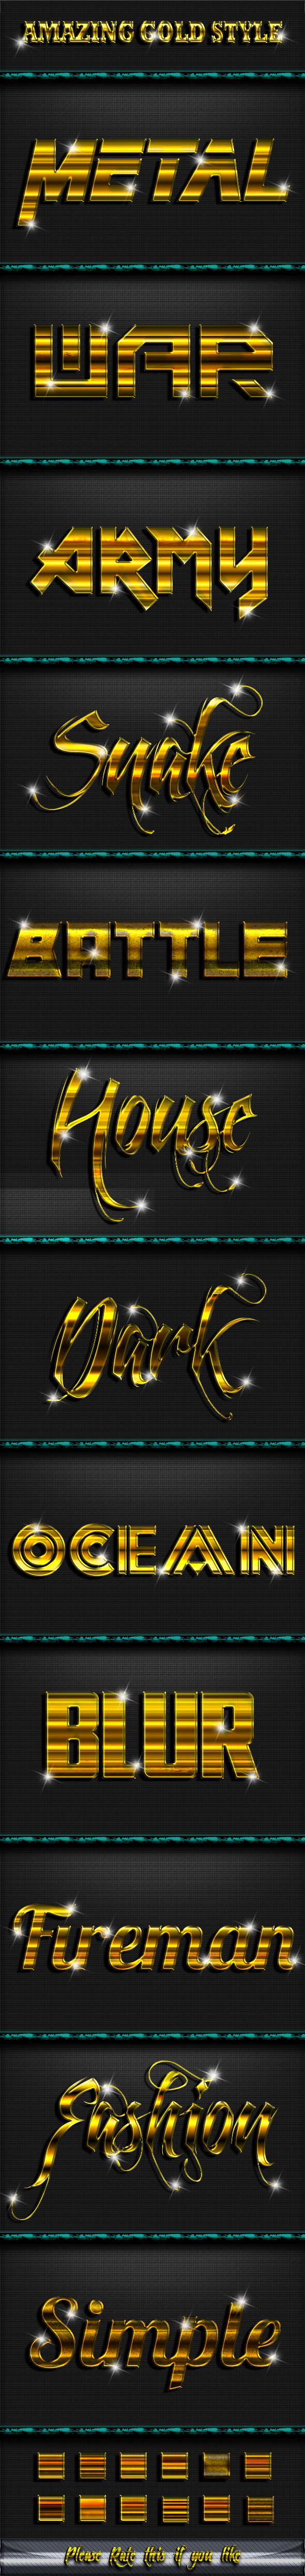 Gold Style Text Effect V. 2 - Styles Photoshop